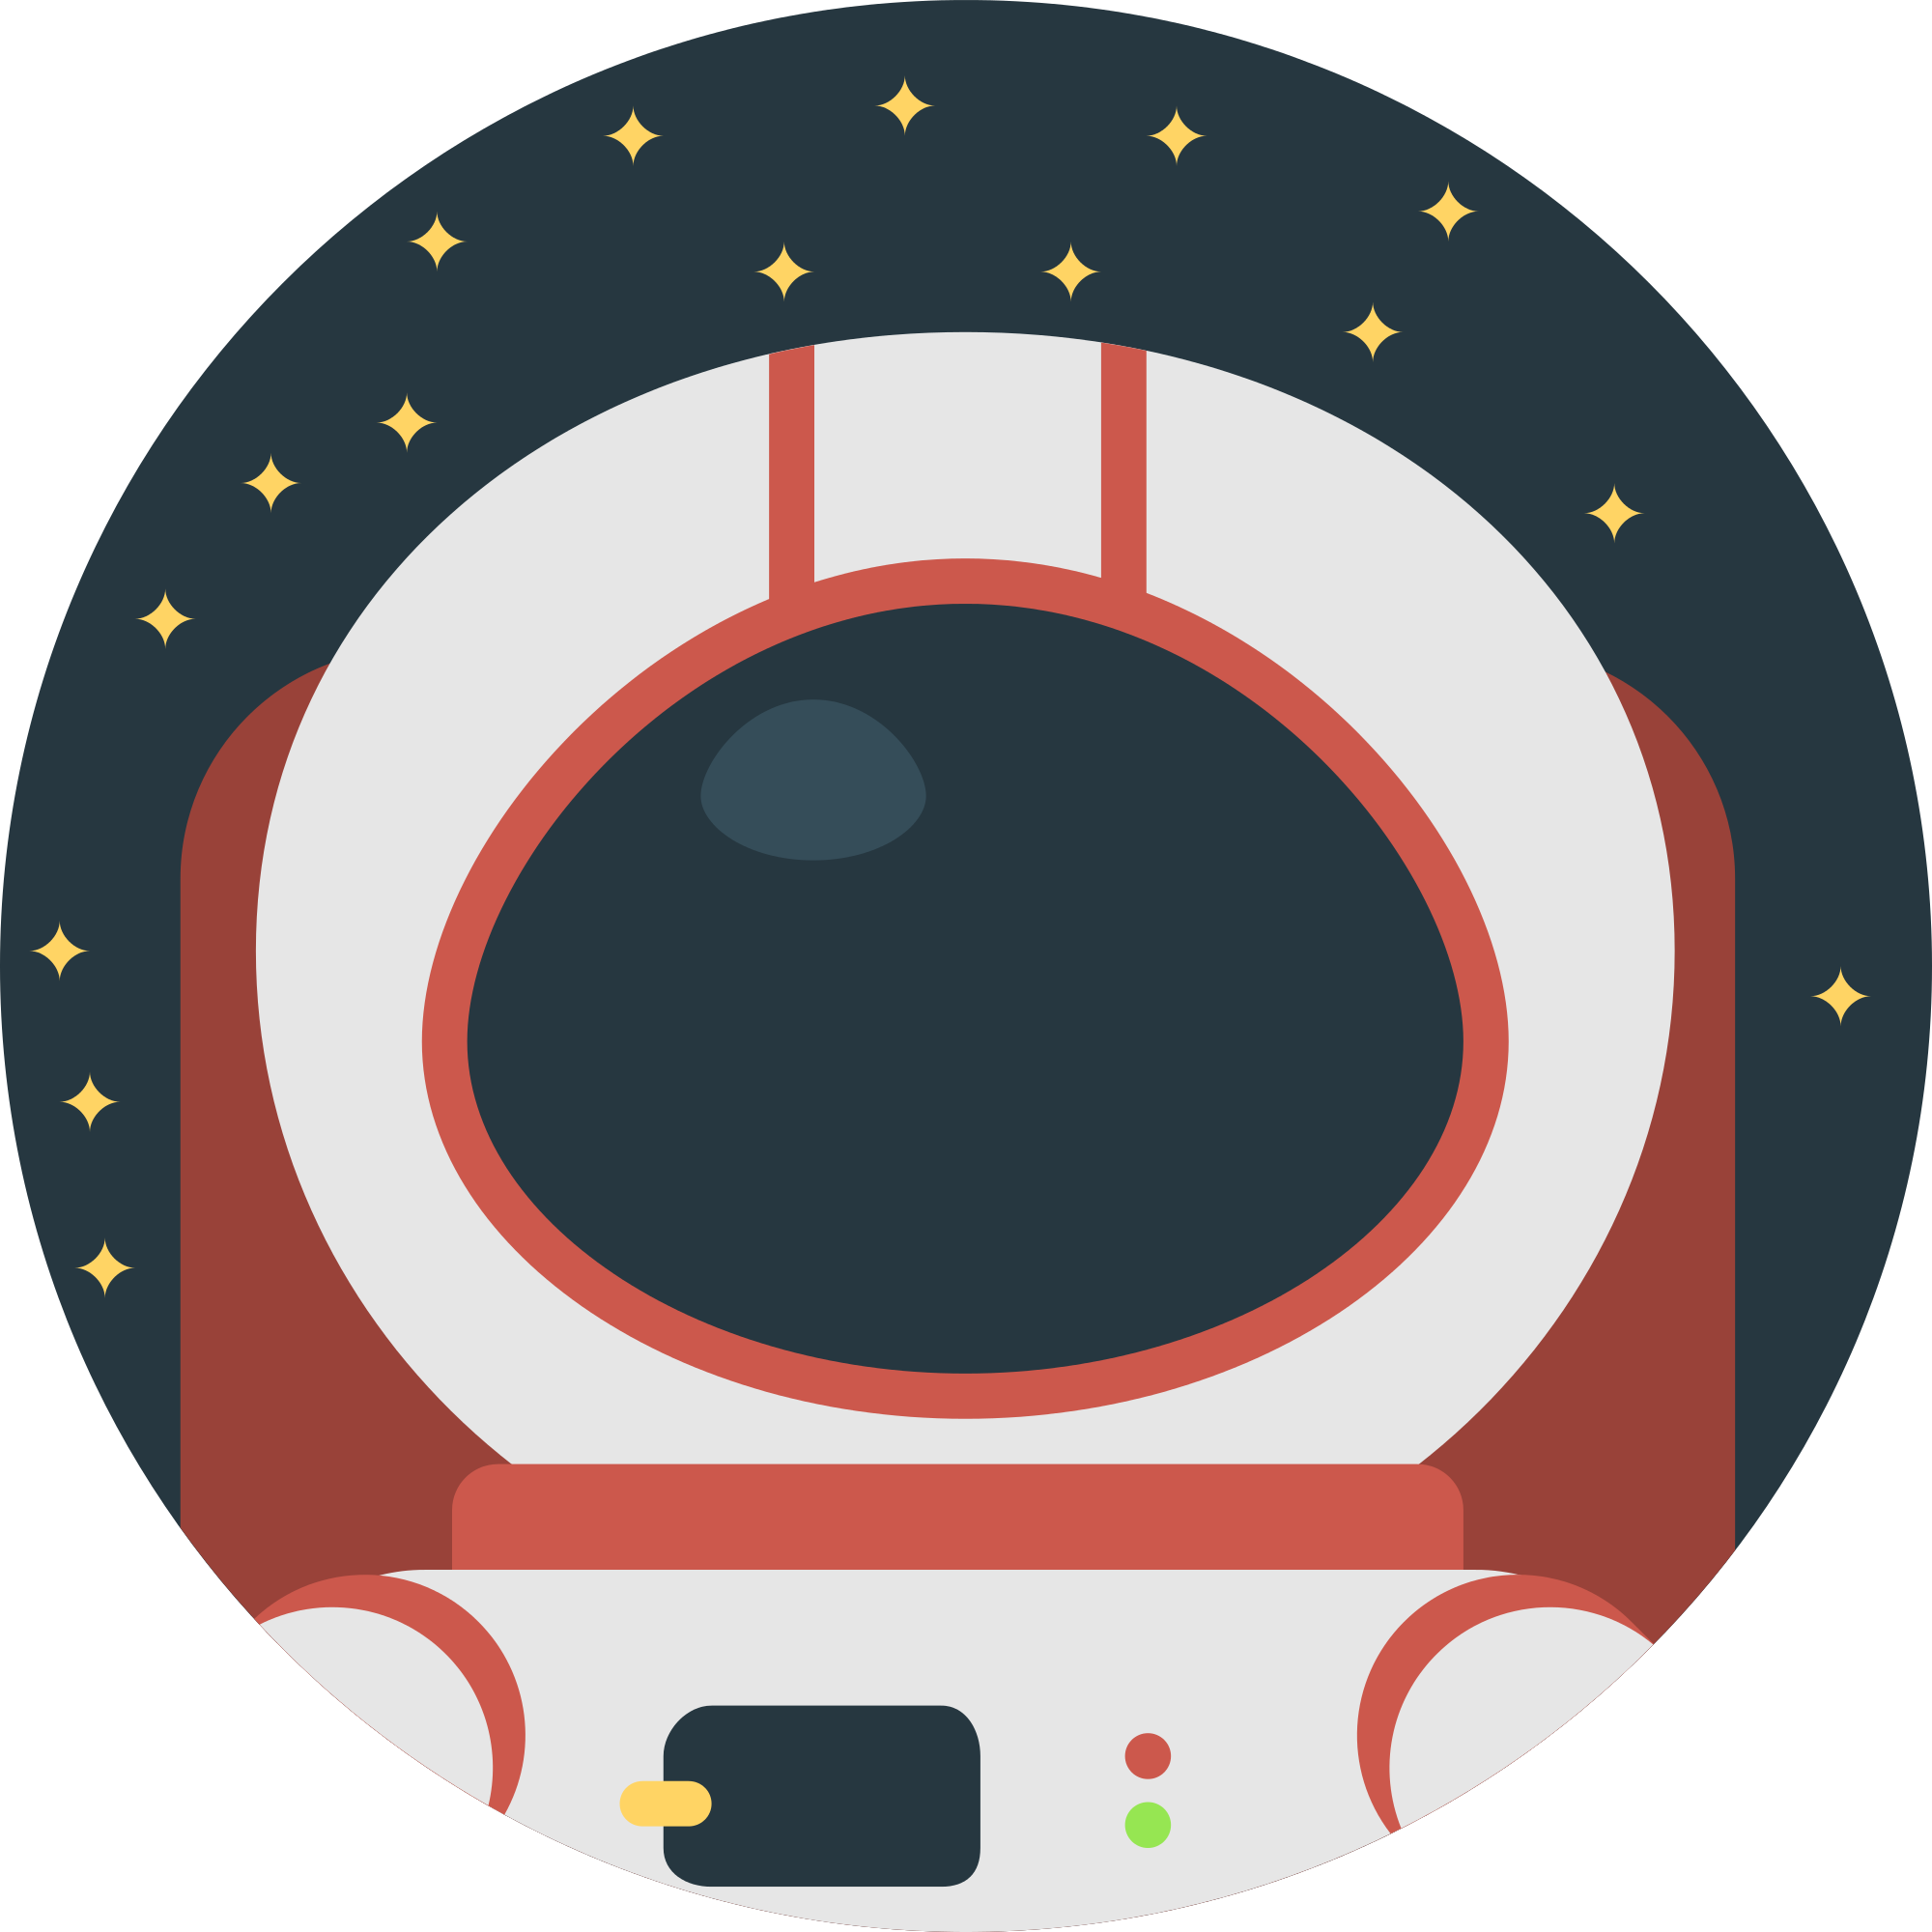 Astronaut svg #179, Download drawings